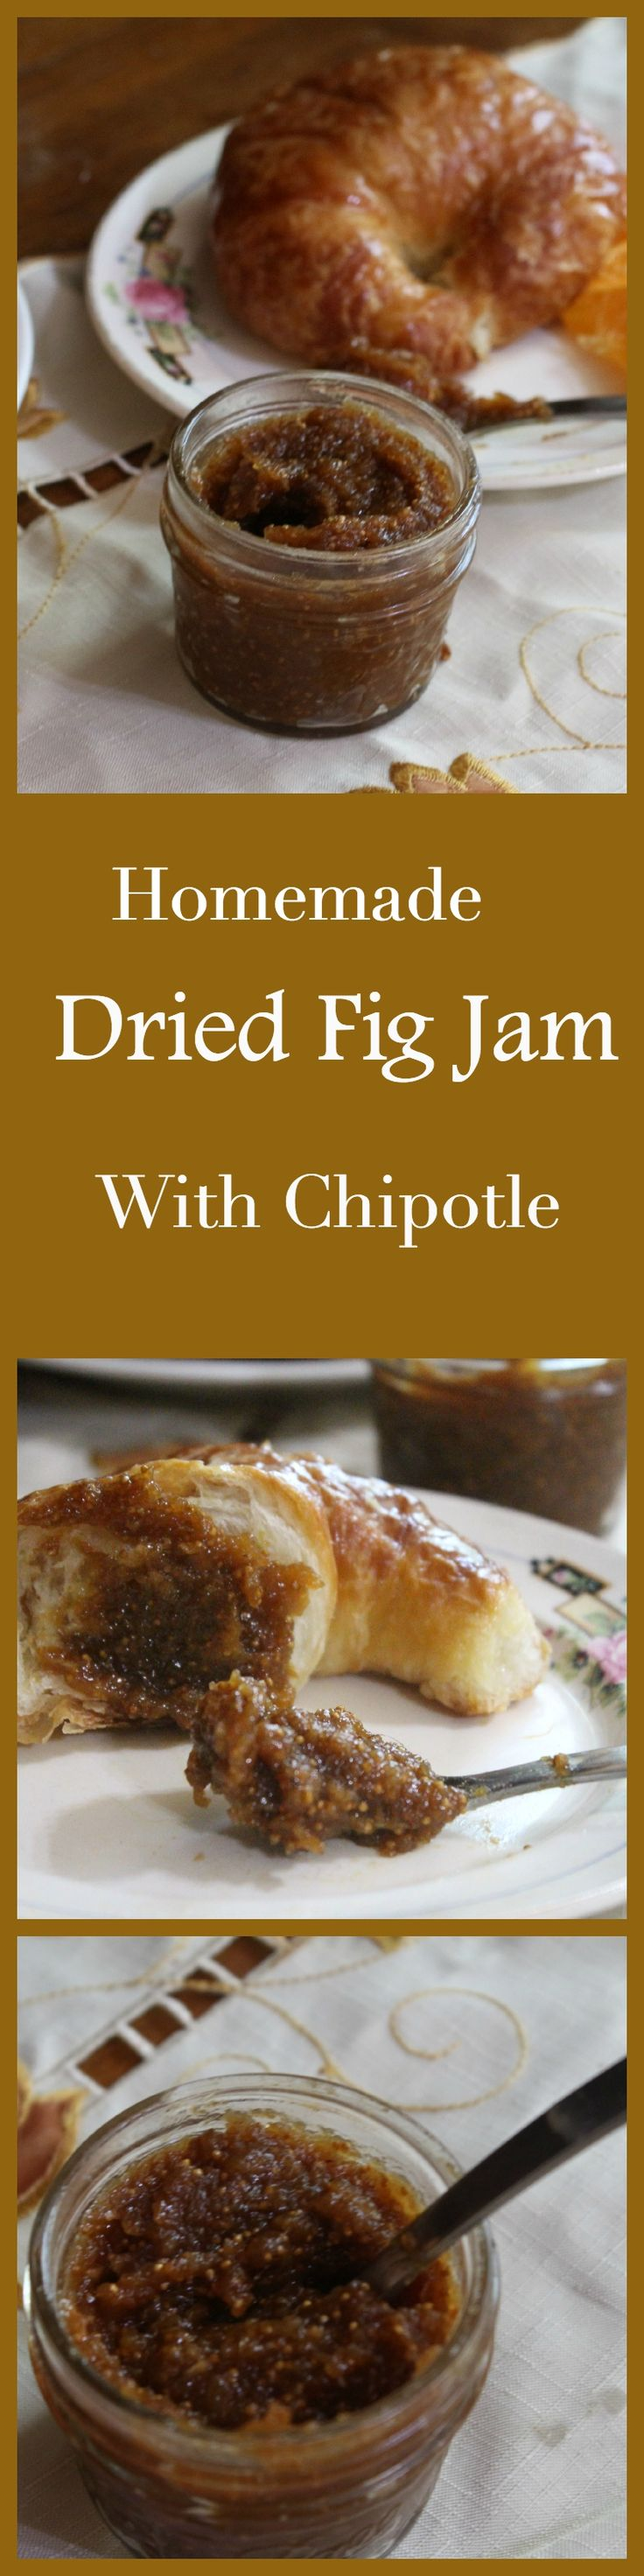 Homemade dried fig jam with chipotle is sweet and smoky-spicy. Best of all, it's super quick and easy to make. RestlessChipotle.com